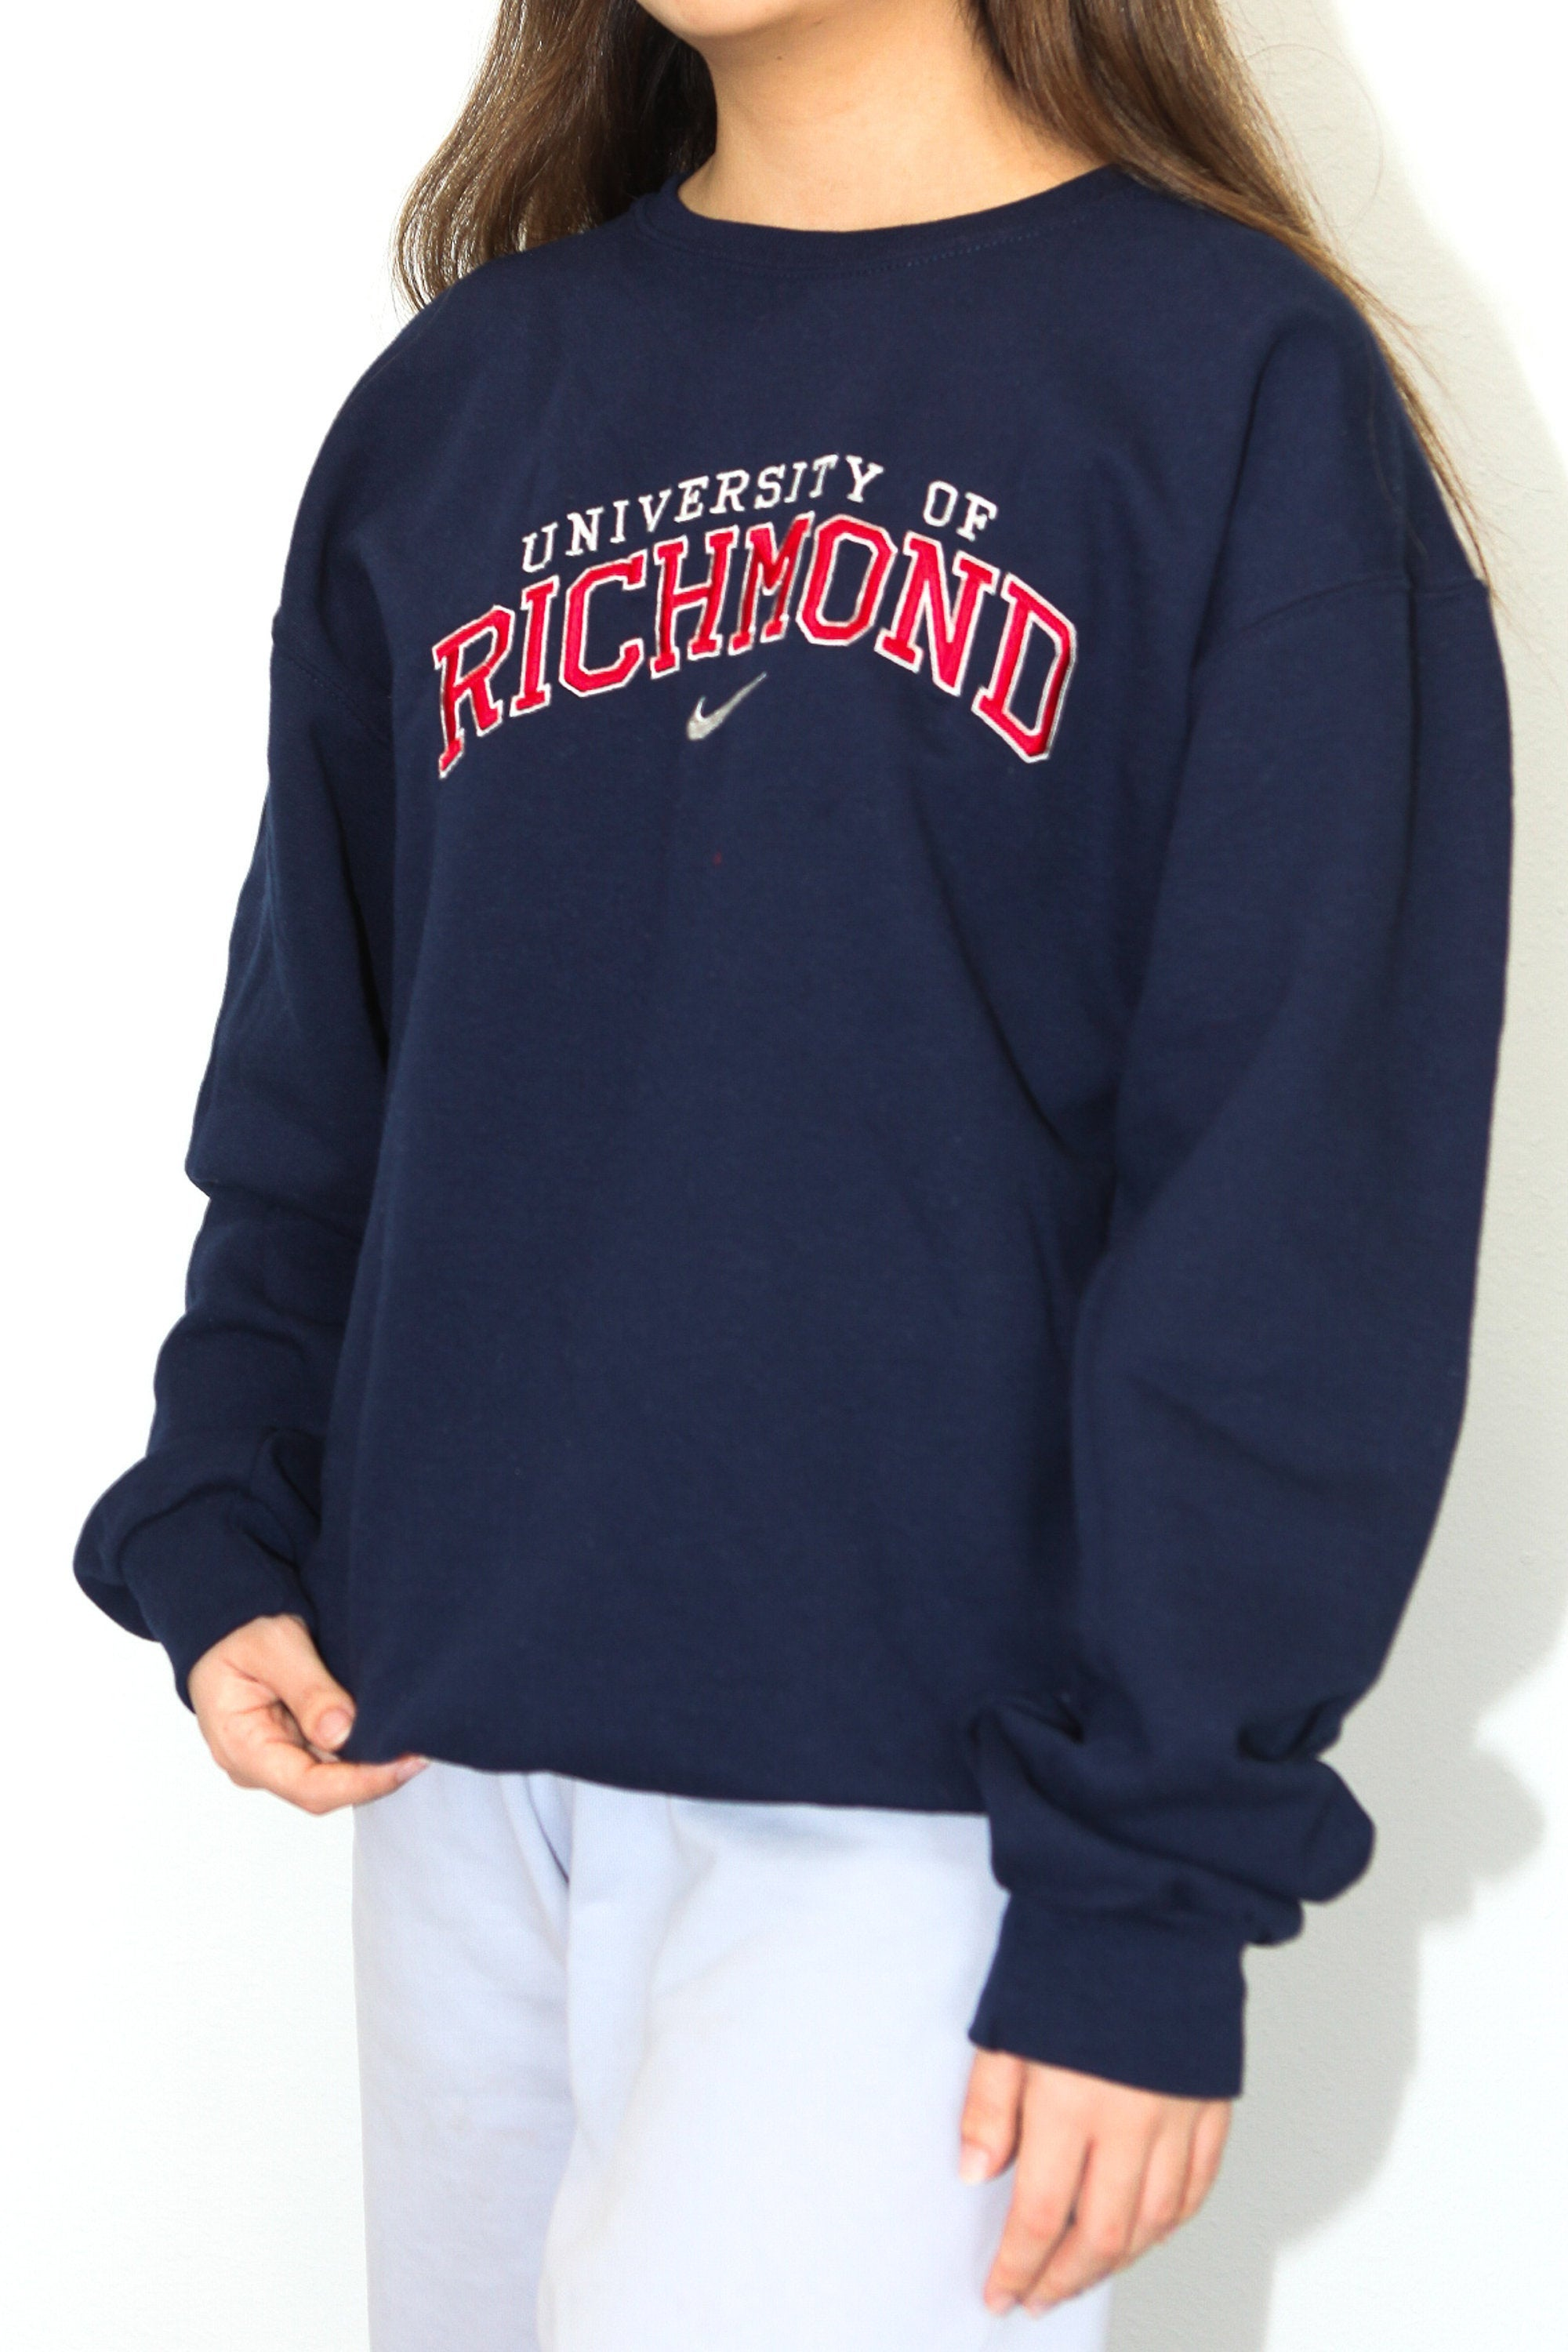 University Of Richmond Embroidered Embroidery